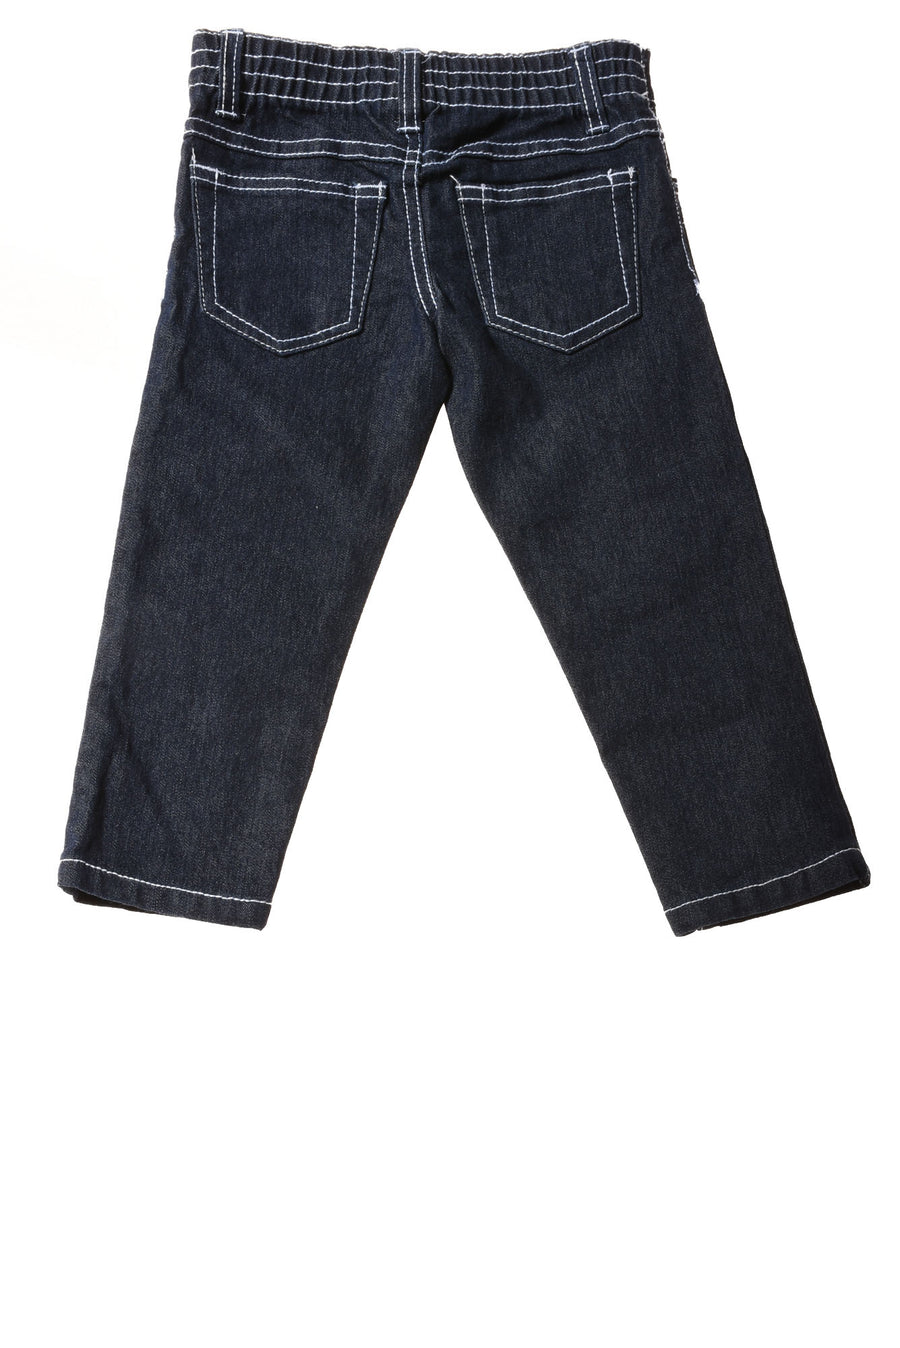 USED Limited Too Baby's Jeans 2T Blue